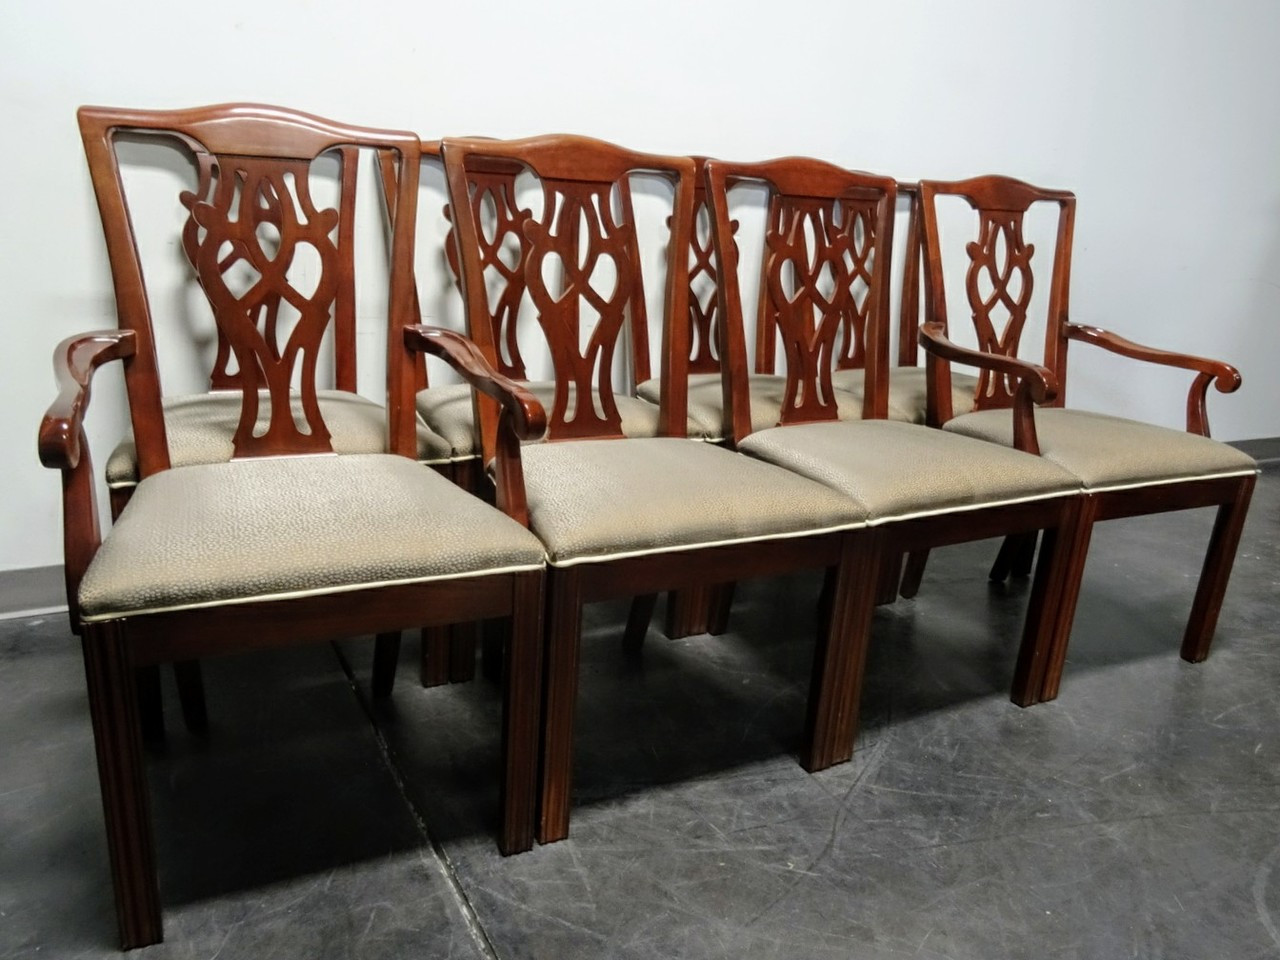 SOLD OUT   DREXEL Chippendale Straight Leg Mahogany Dining Chairs   Set Of 8